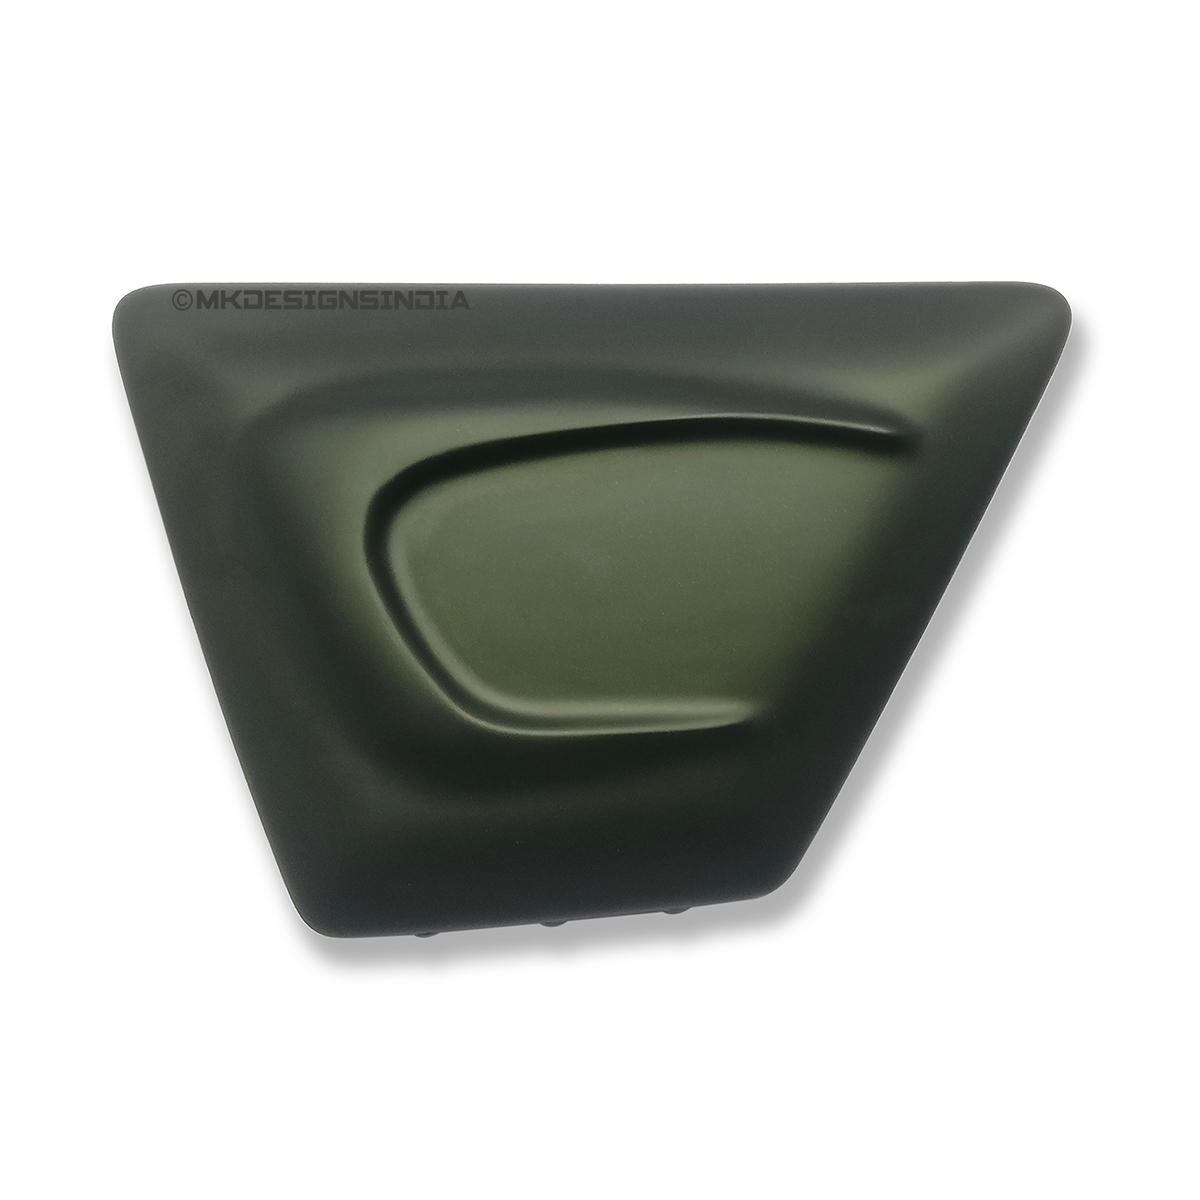 Side Panel for Royal Enfield Interceptor 650 & Continental GT 650